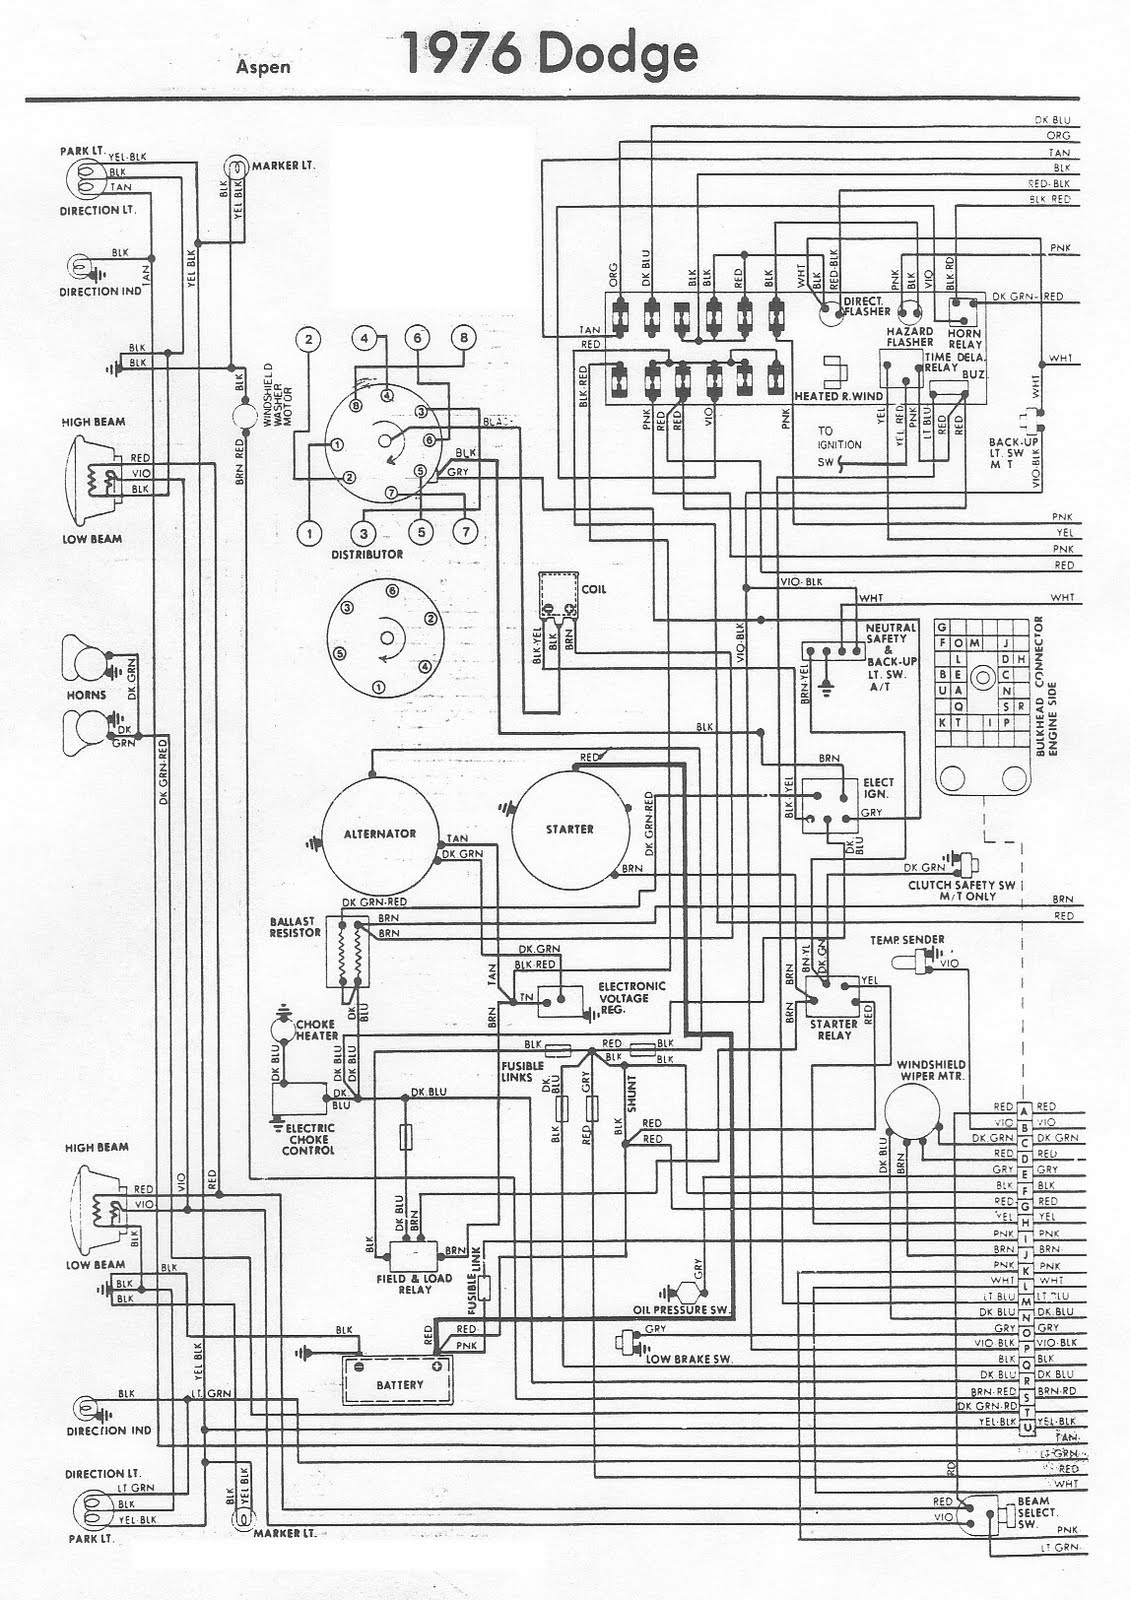 small resolution of 2007 chrysler aspen engine diagram wiring diagram image chrysler aspen wiring diagram